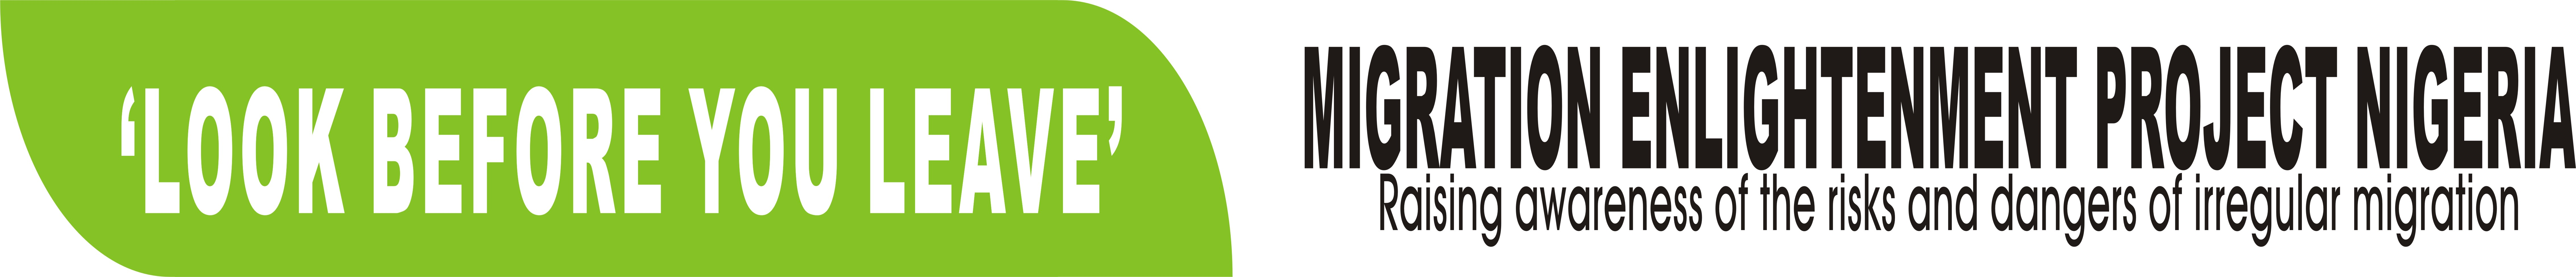 Migration Enlightenment Project Nigeria